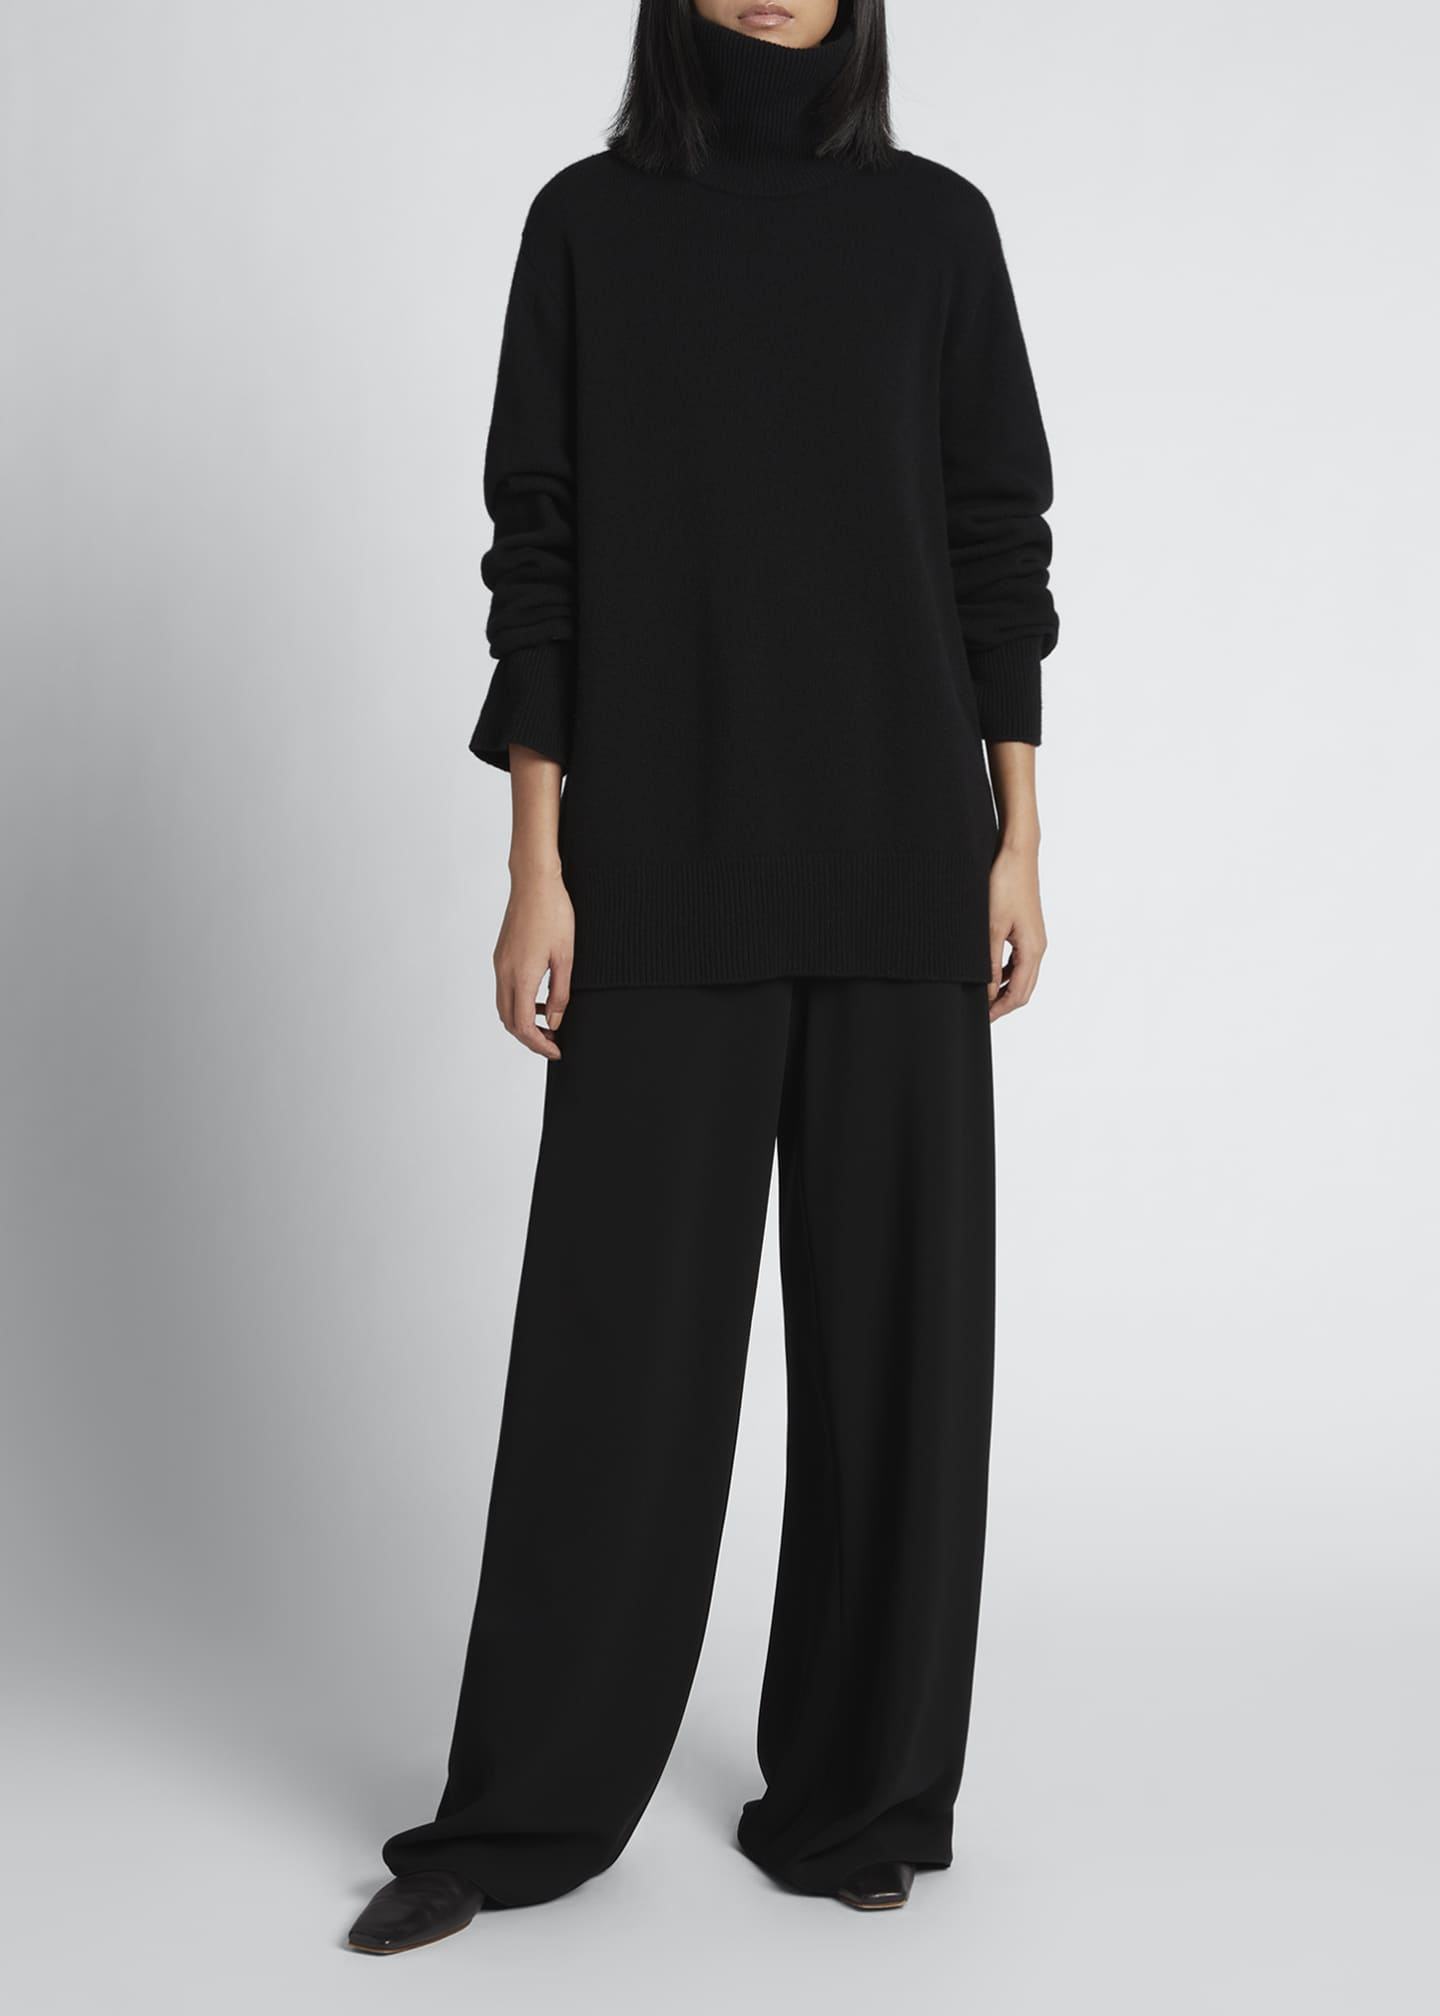 Image 1 of 3: Milina Oversized Turtleneck Sweater